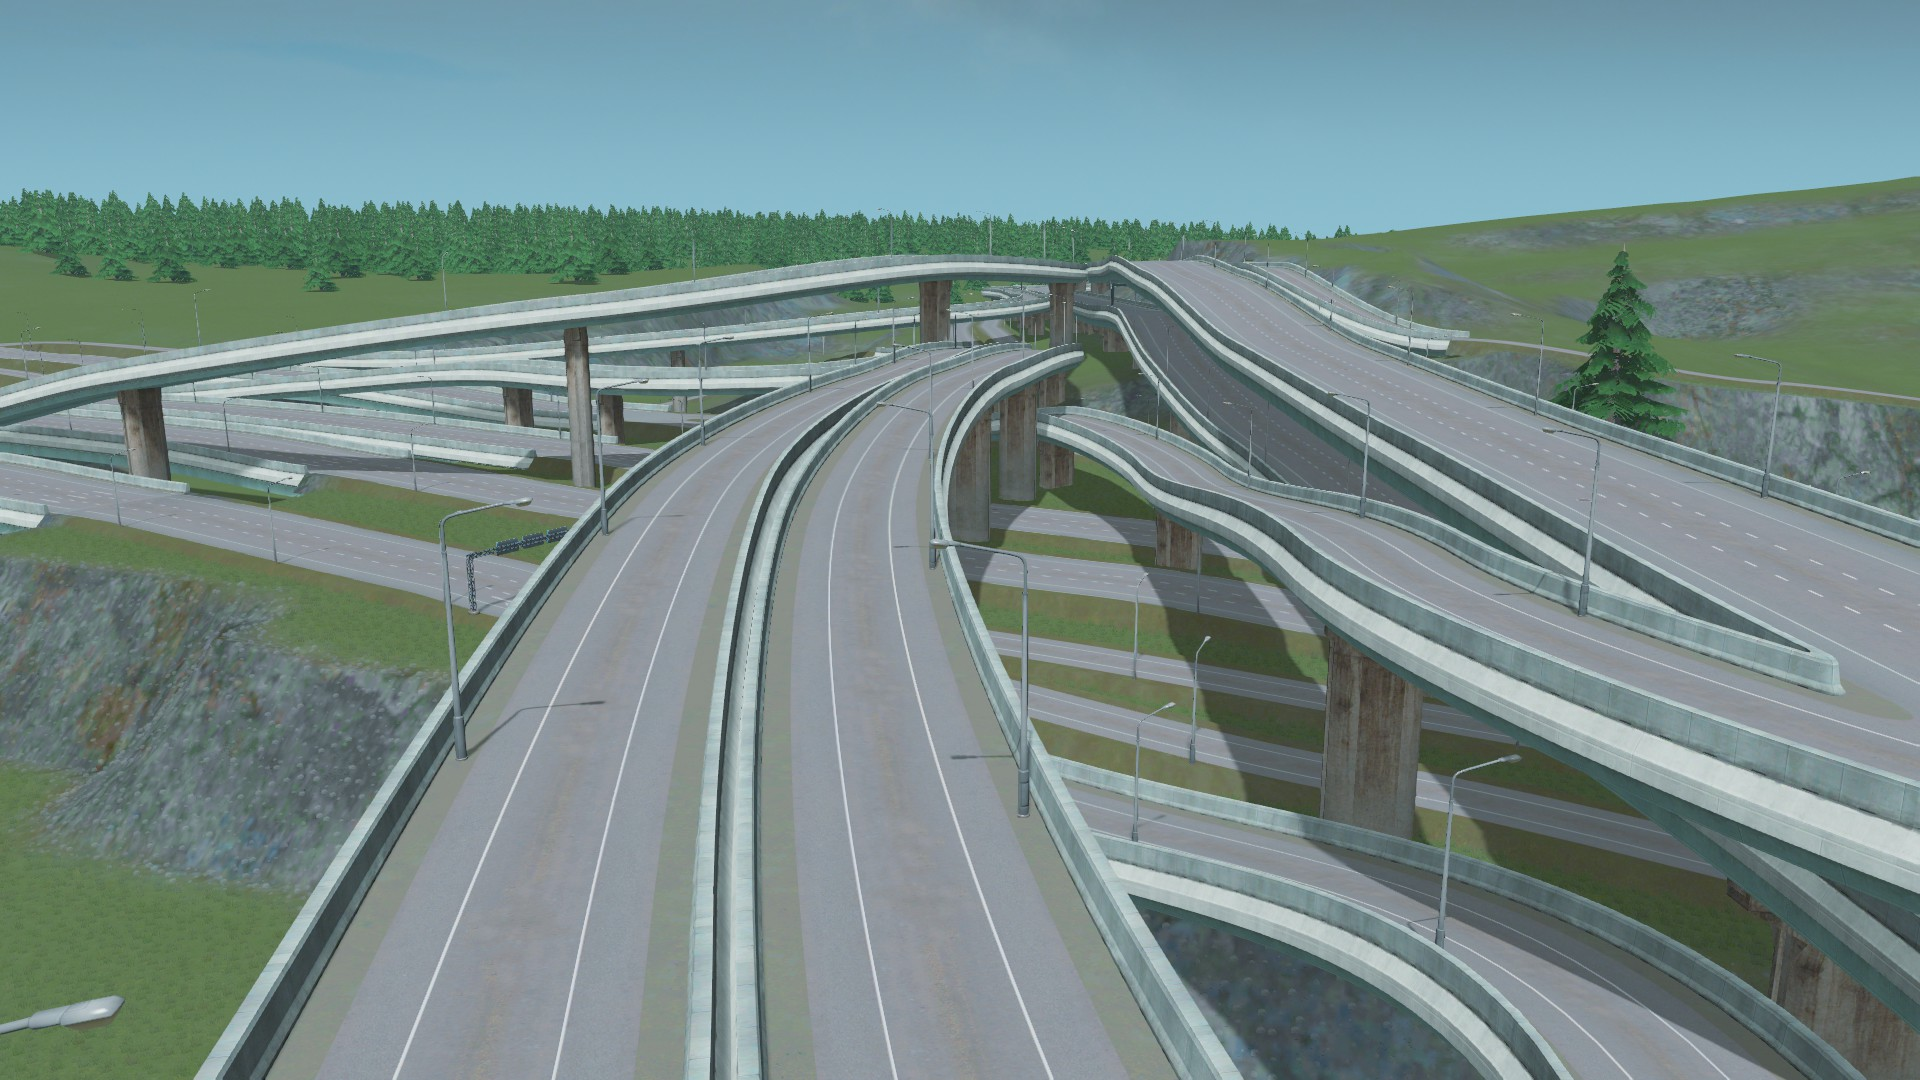 Highway clipart smooth road. Show us your interchanges